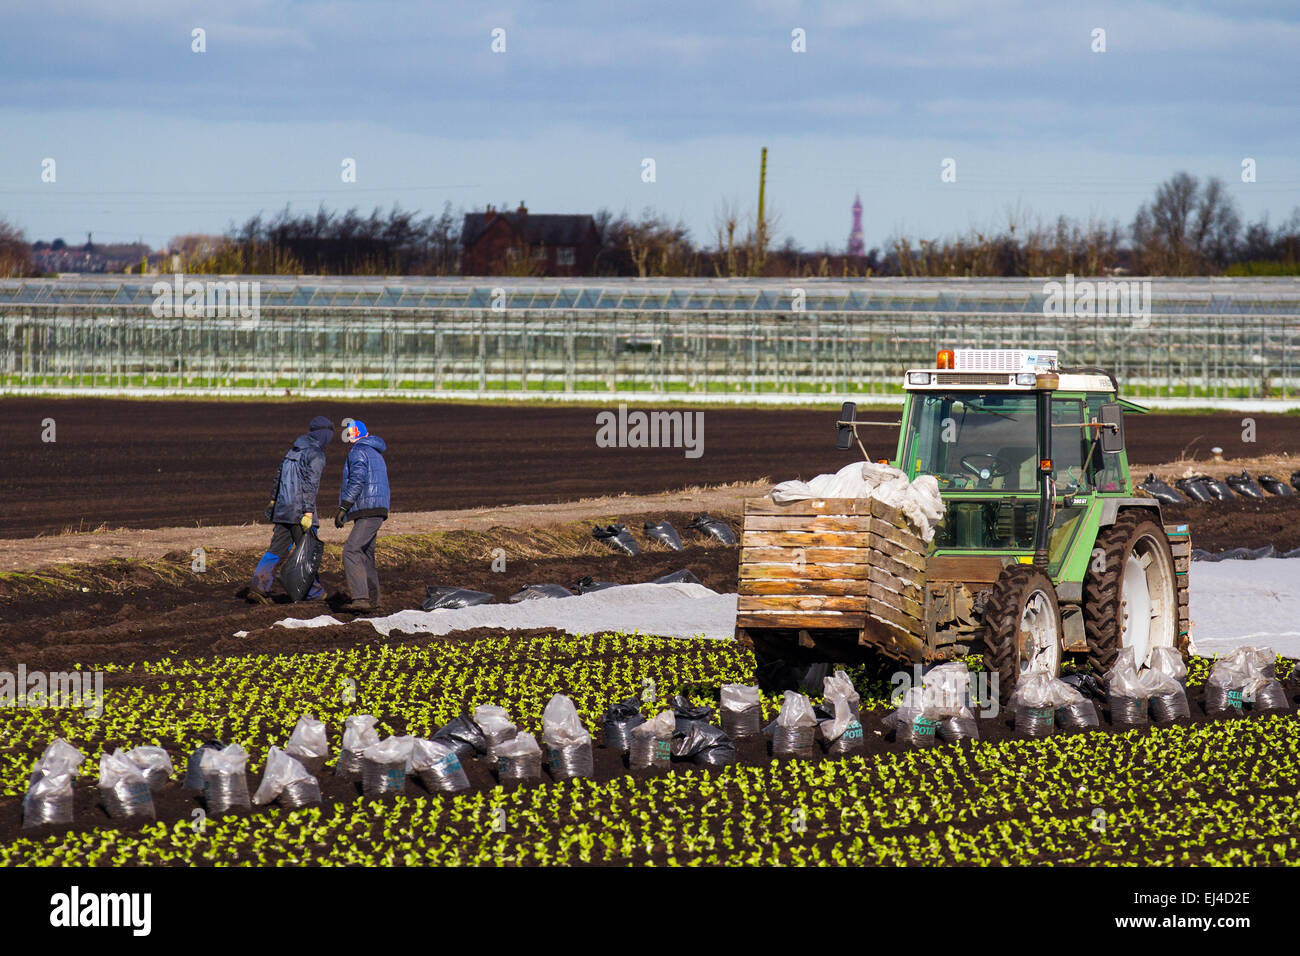 Tarleton, Southport, Lancashire, UK 21st March, 2015.  Warm temperatures and drying soils enable farm workers, labourers - Stock Image